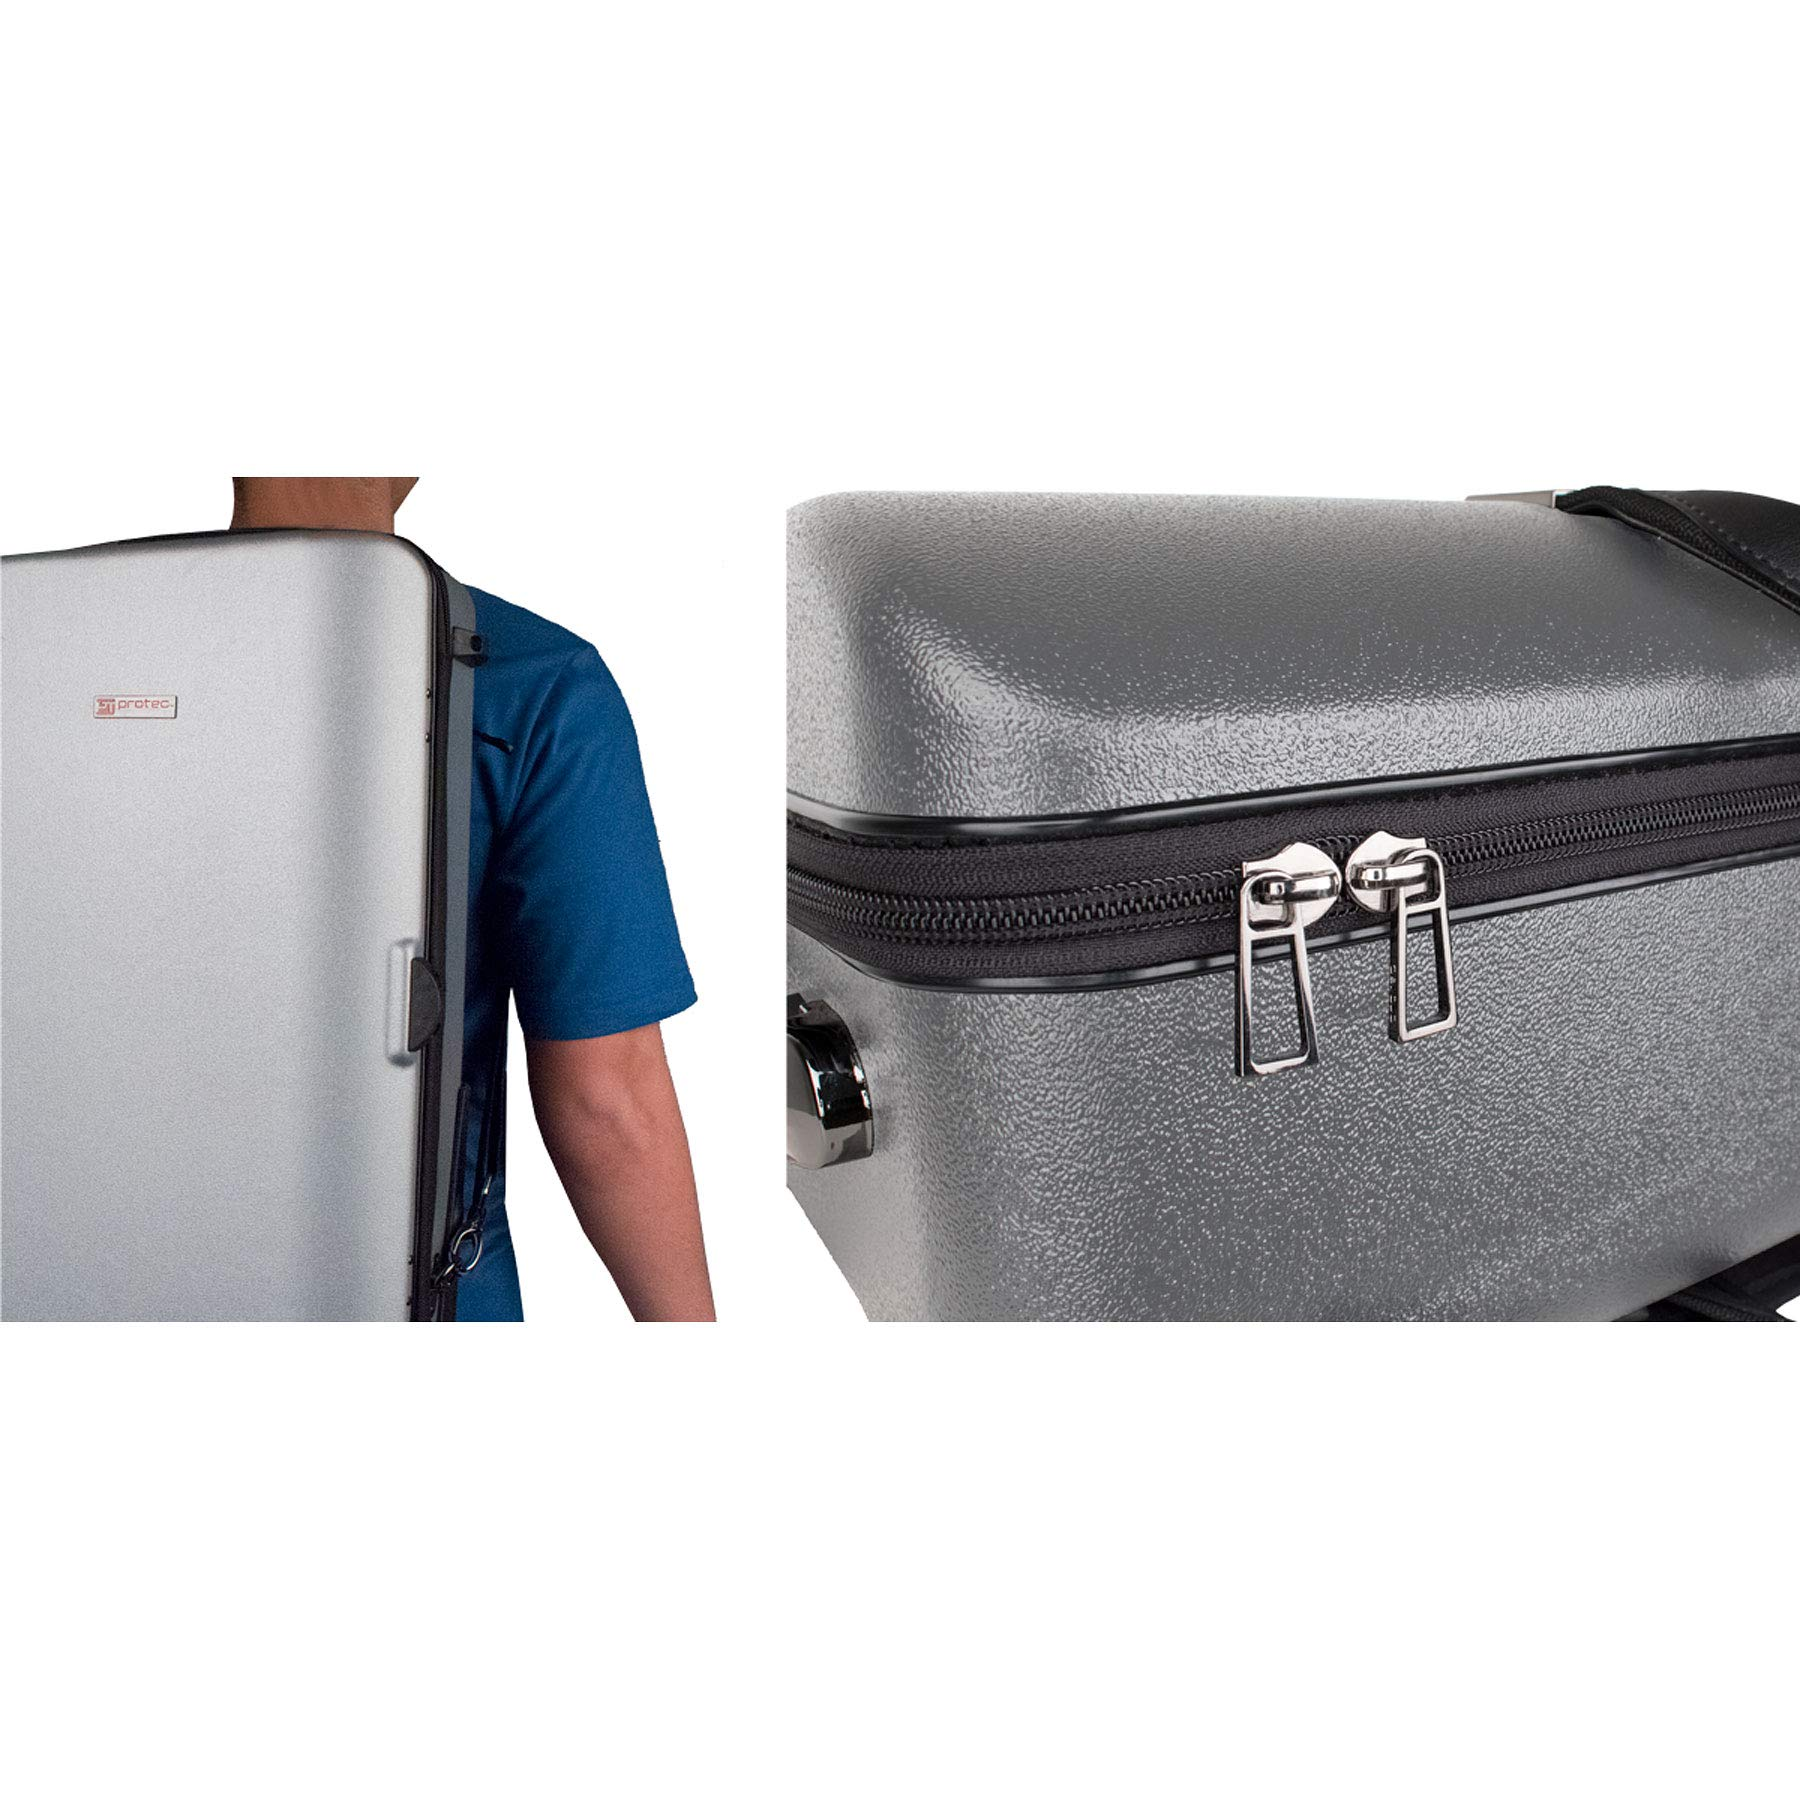 Protec Triple Trumpet Case with Wheels, Silver (BLT301TSX) by ProTec (Image #6)